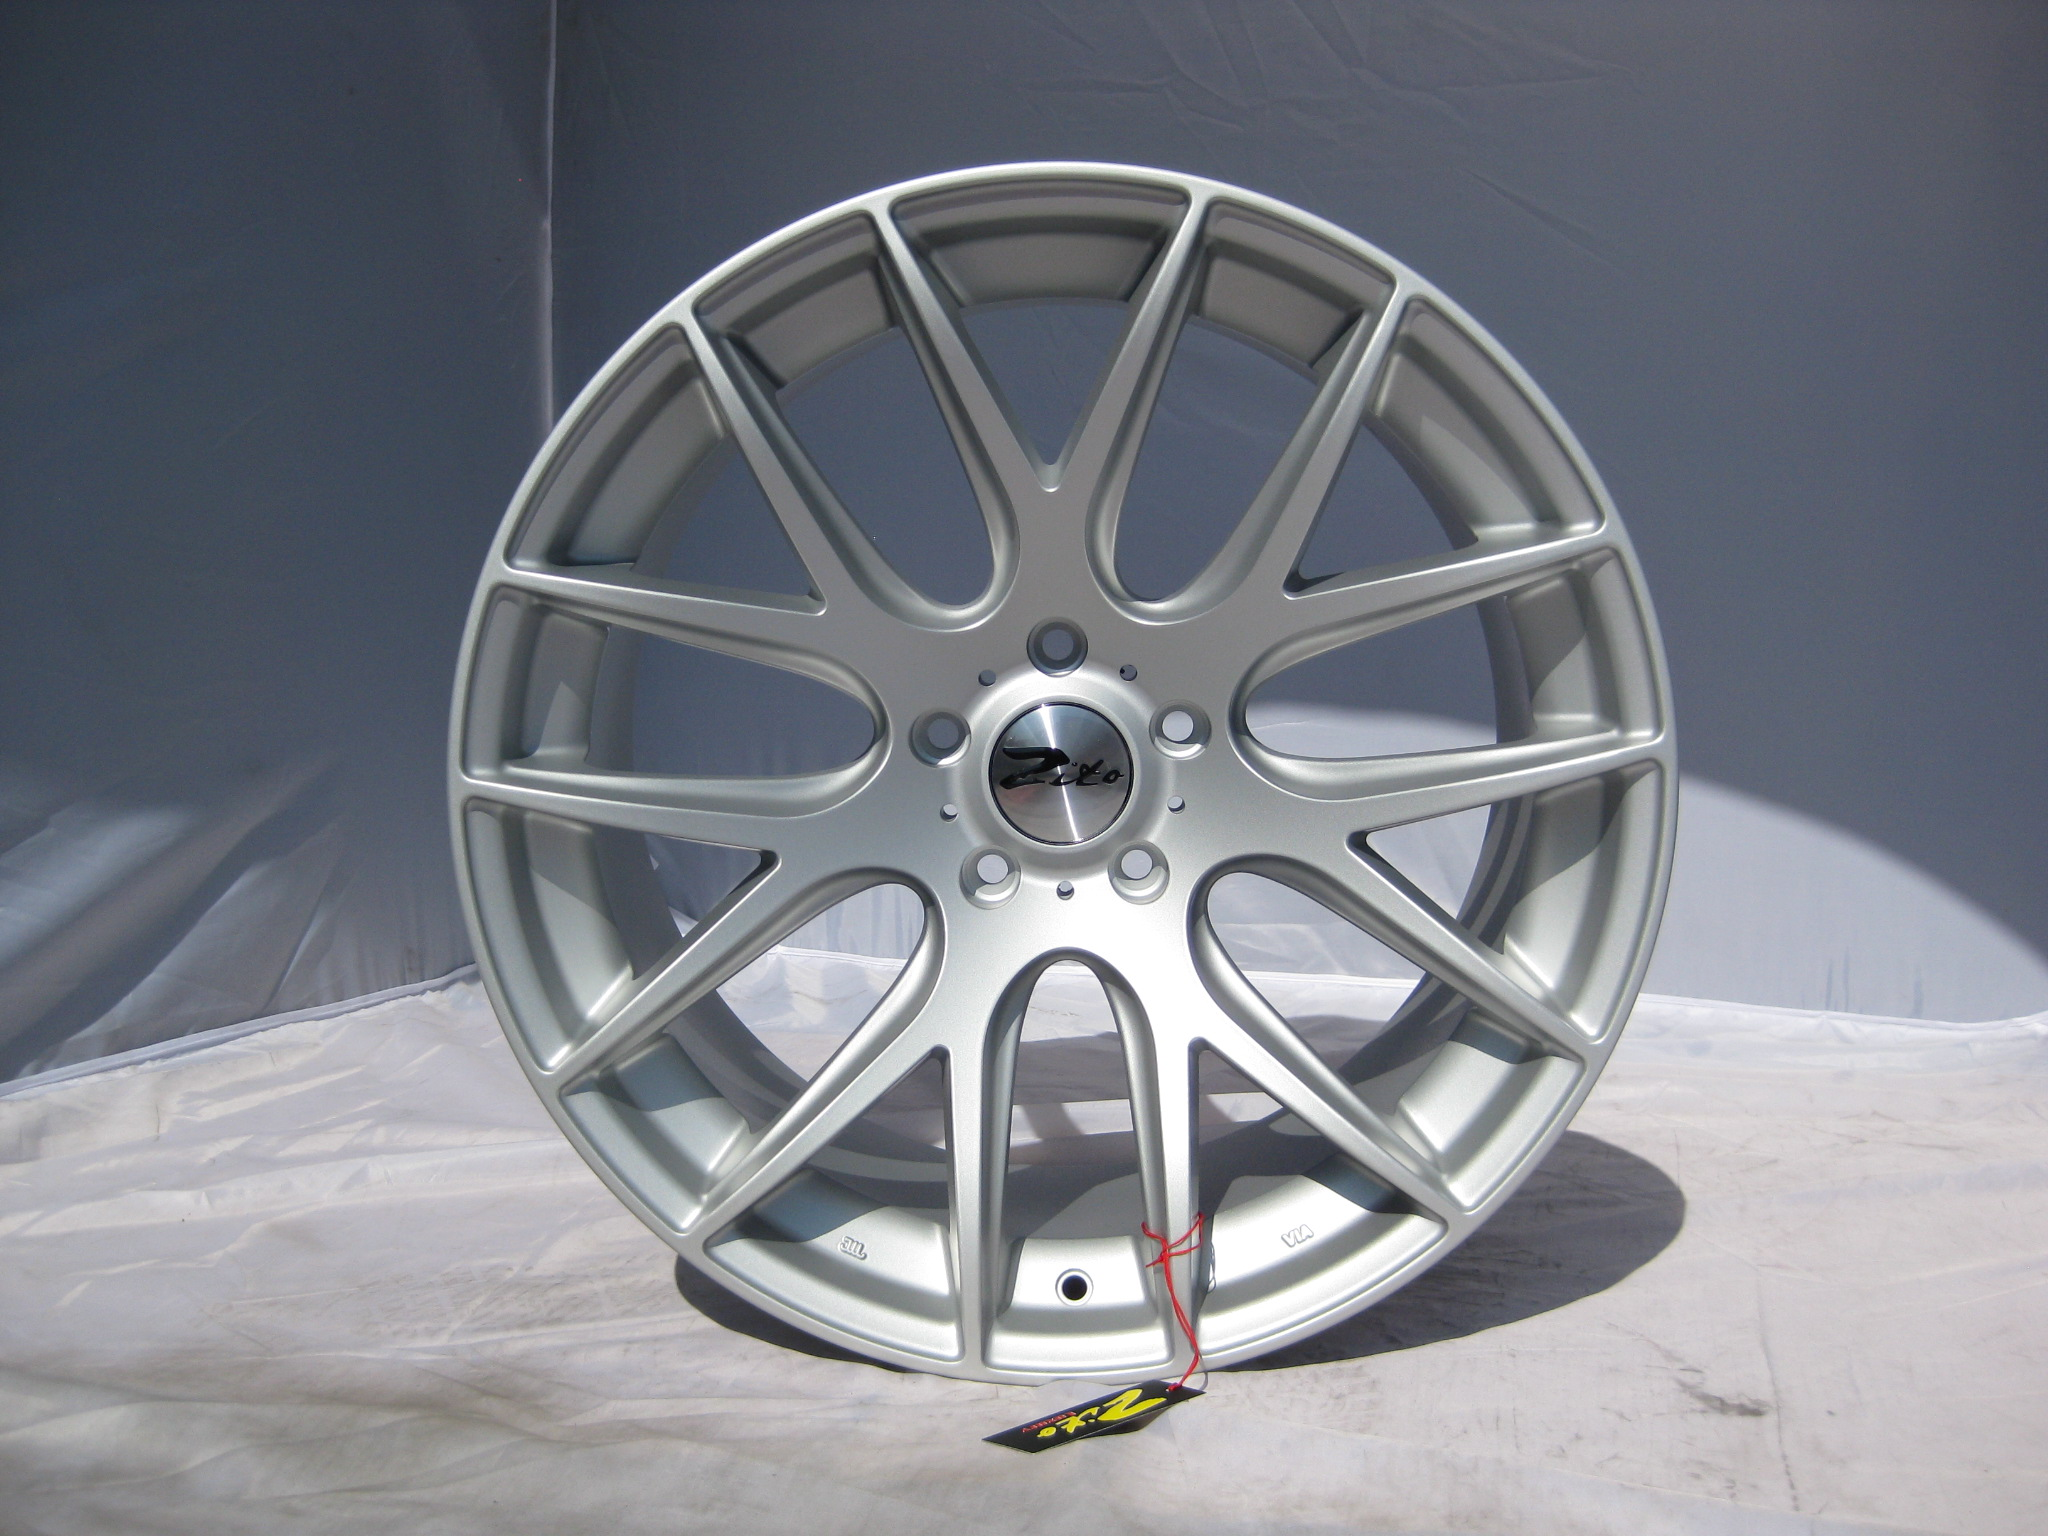 "NEW 20"" ZITO 935 CSL GTS STAGGERED ALLOYS FINISHED IN RARE MATT SILVER, SUPER DEEP CONCAVE 10.5"" REARS WITH 860KG LOAD"